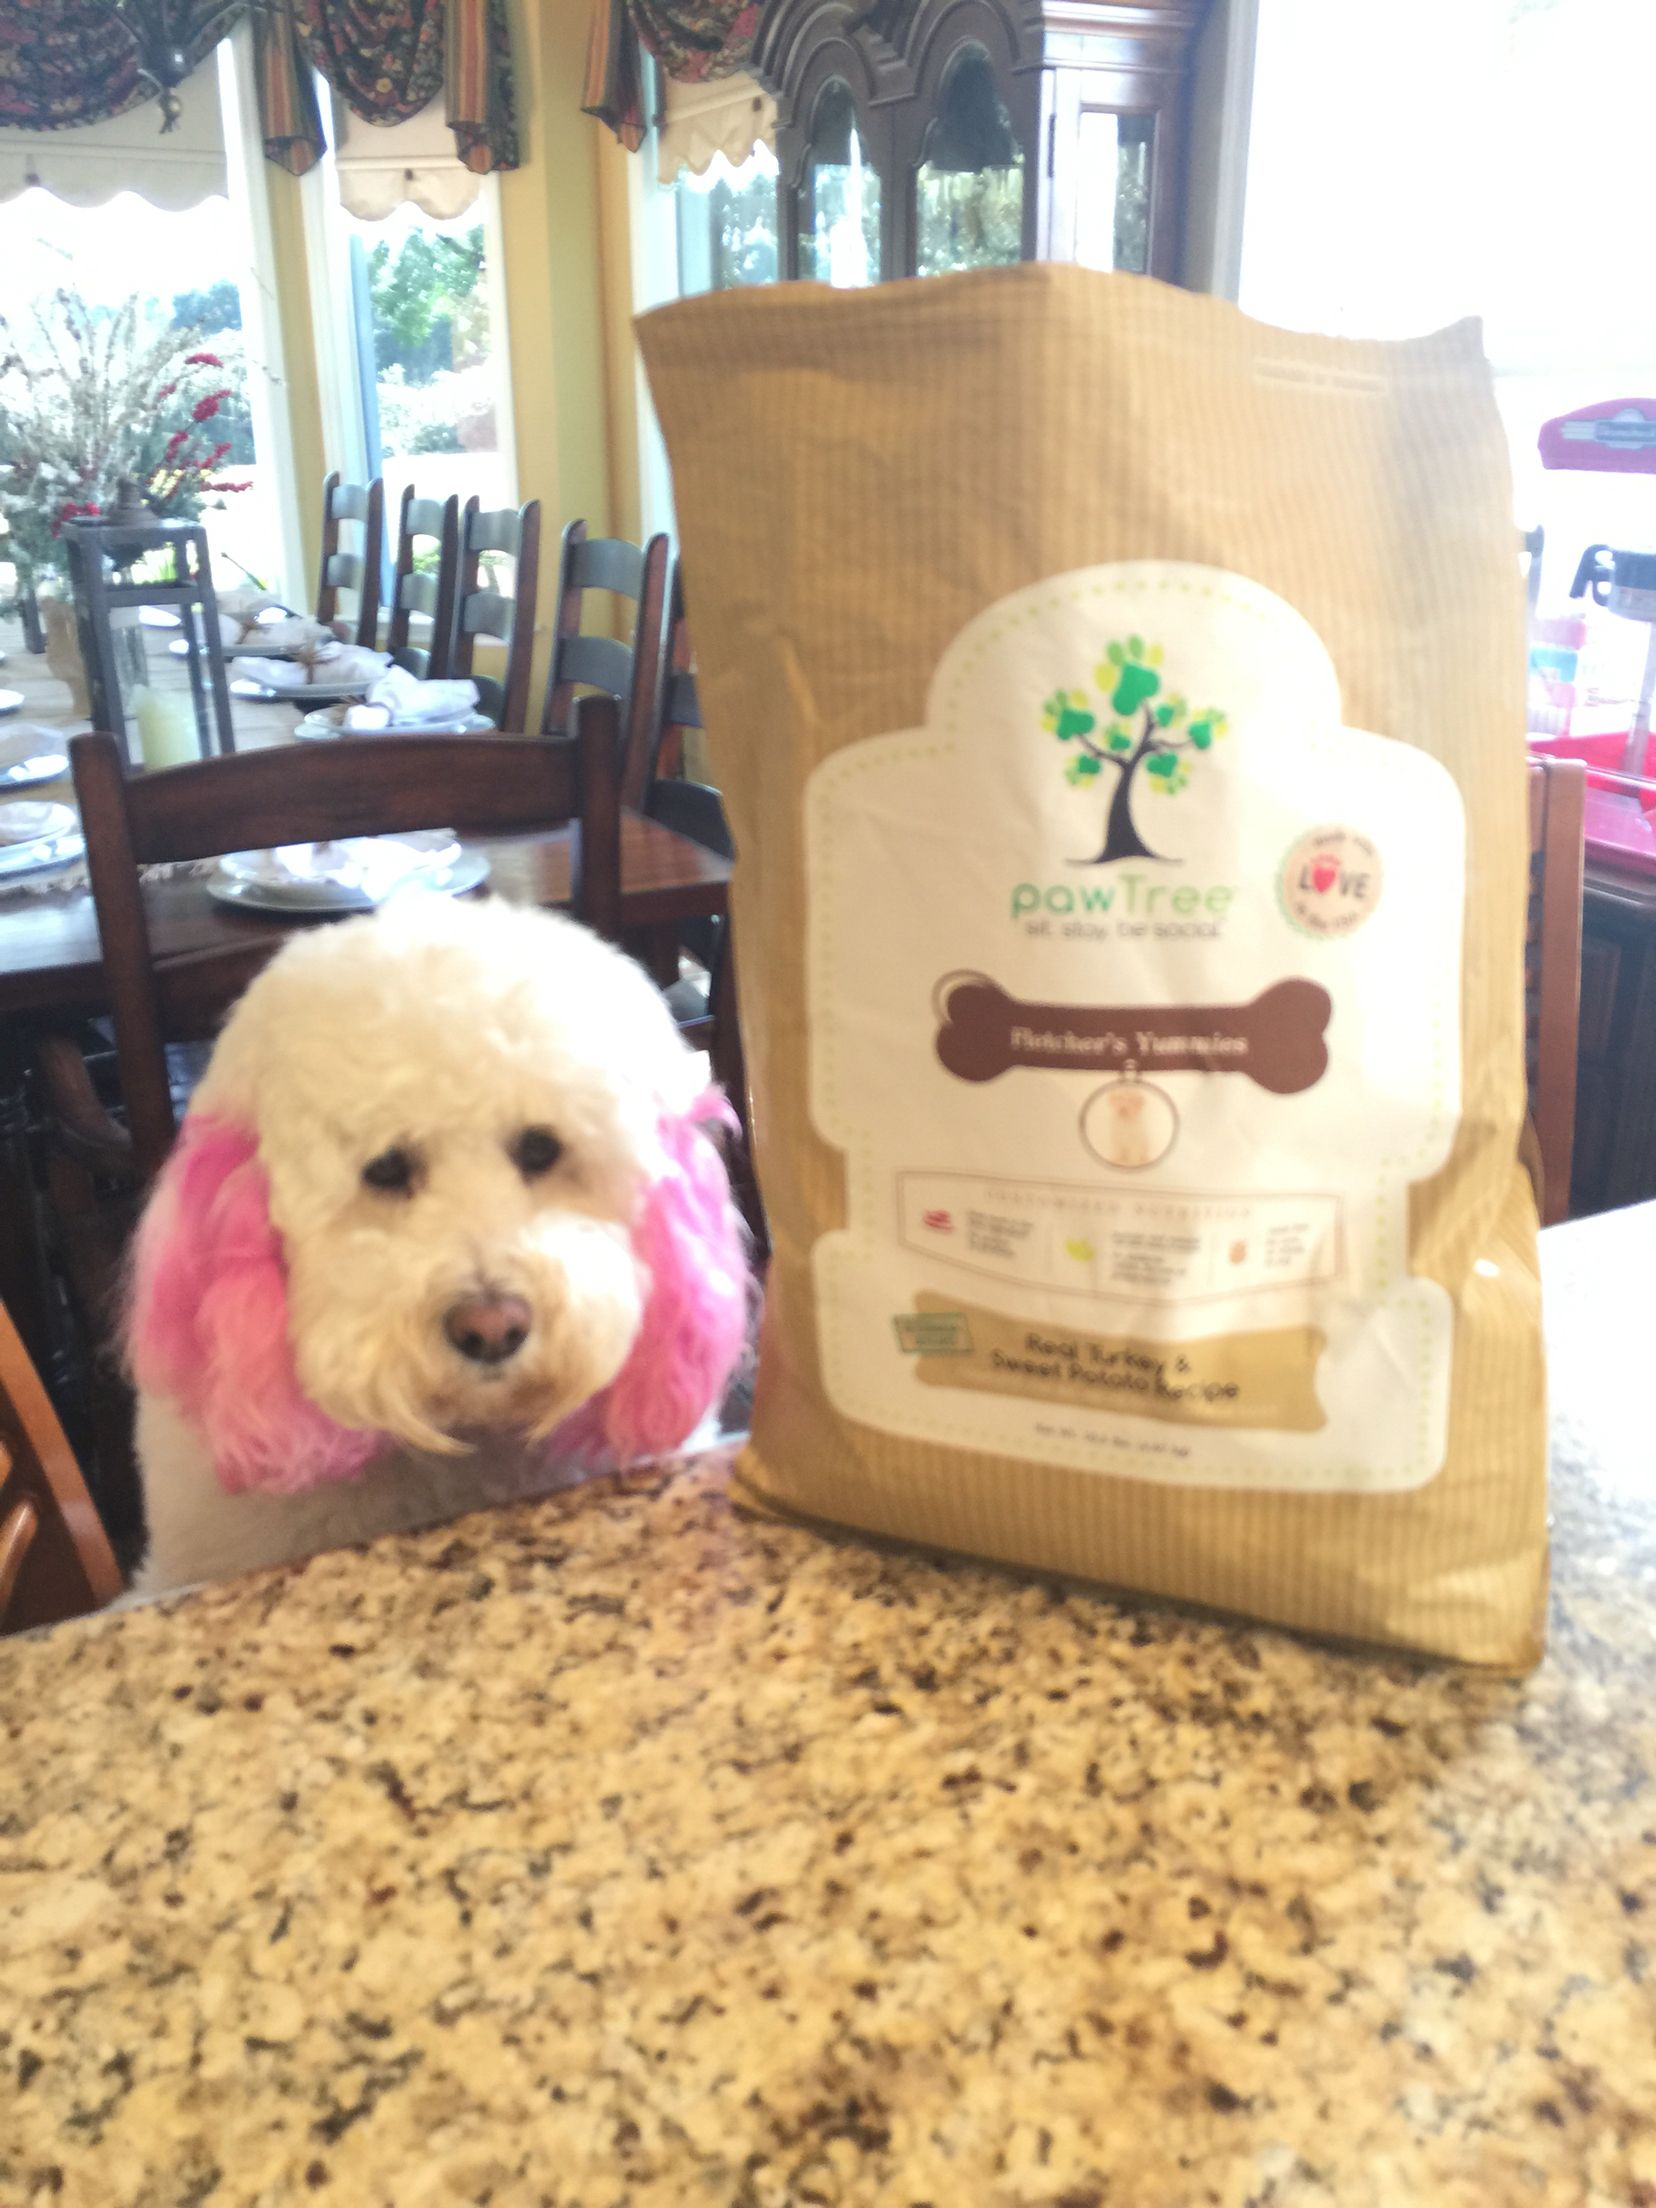 London loves pawtree dog food she will not eat any dog